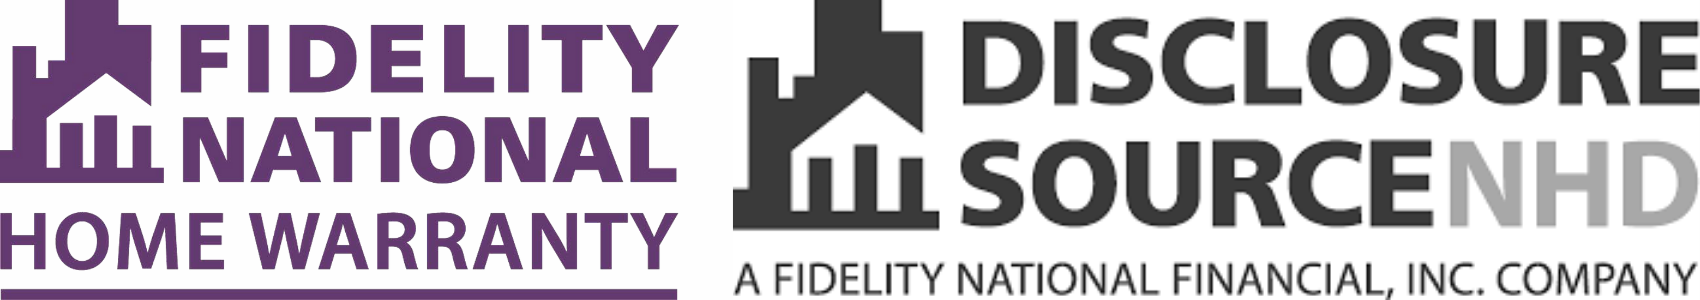 Fidelity National Warranty / Disclosure Source NHD